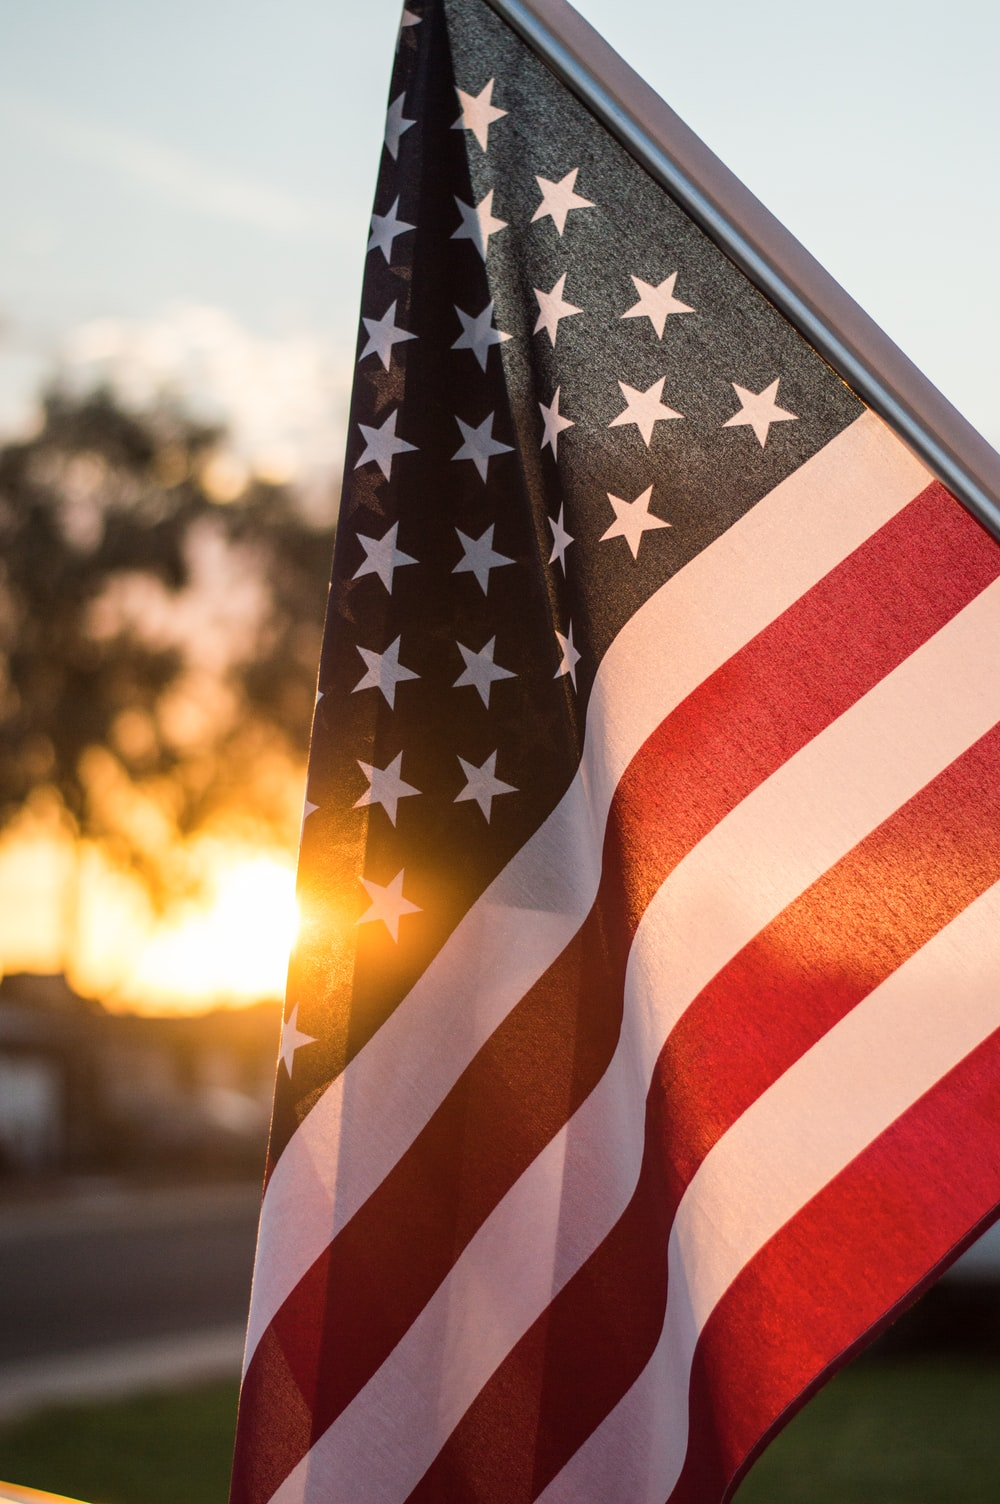 500+ Usa Flag Pictures [HD]   Download Free Images on Unsplash